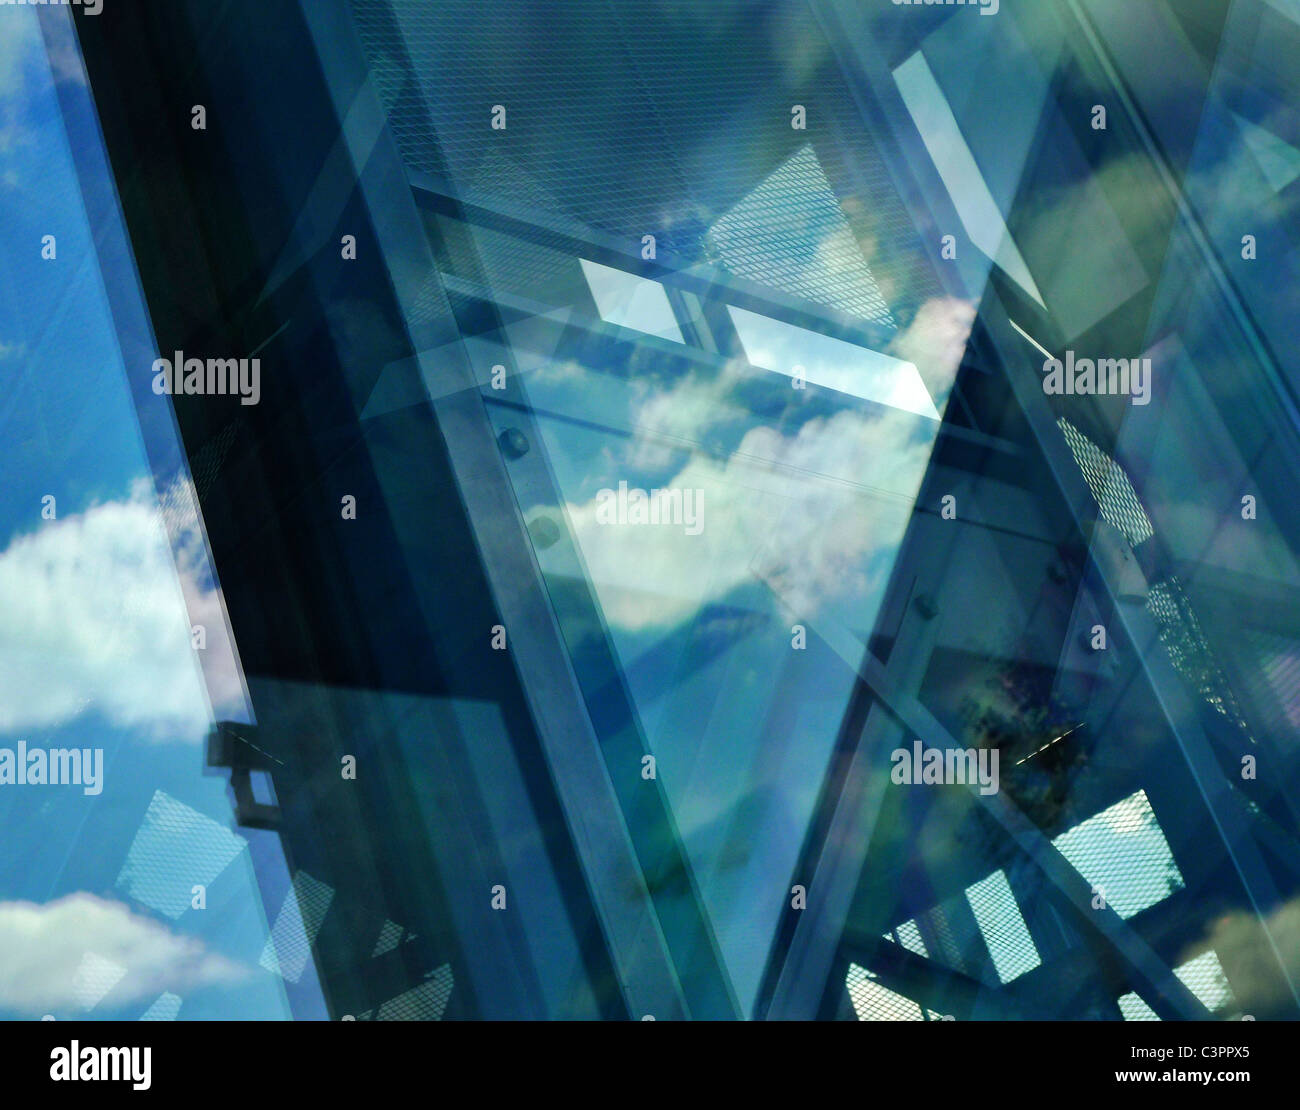 Abstrakte reflektierenden architektonische Komposition. Stockbild